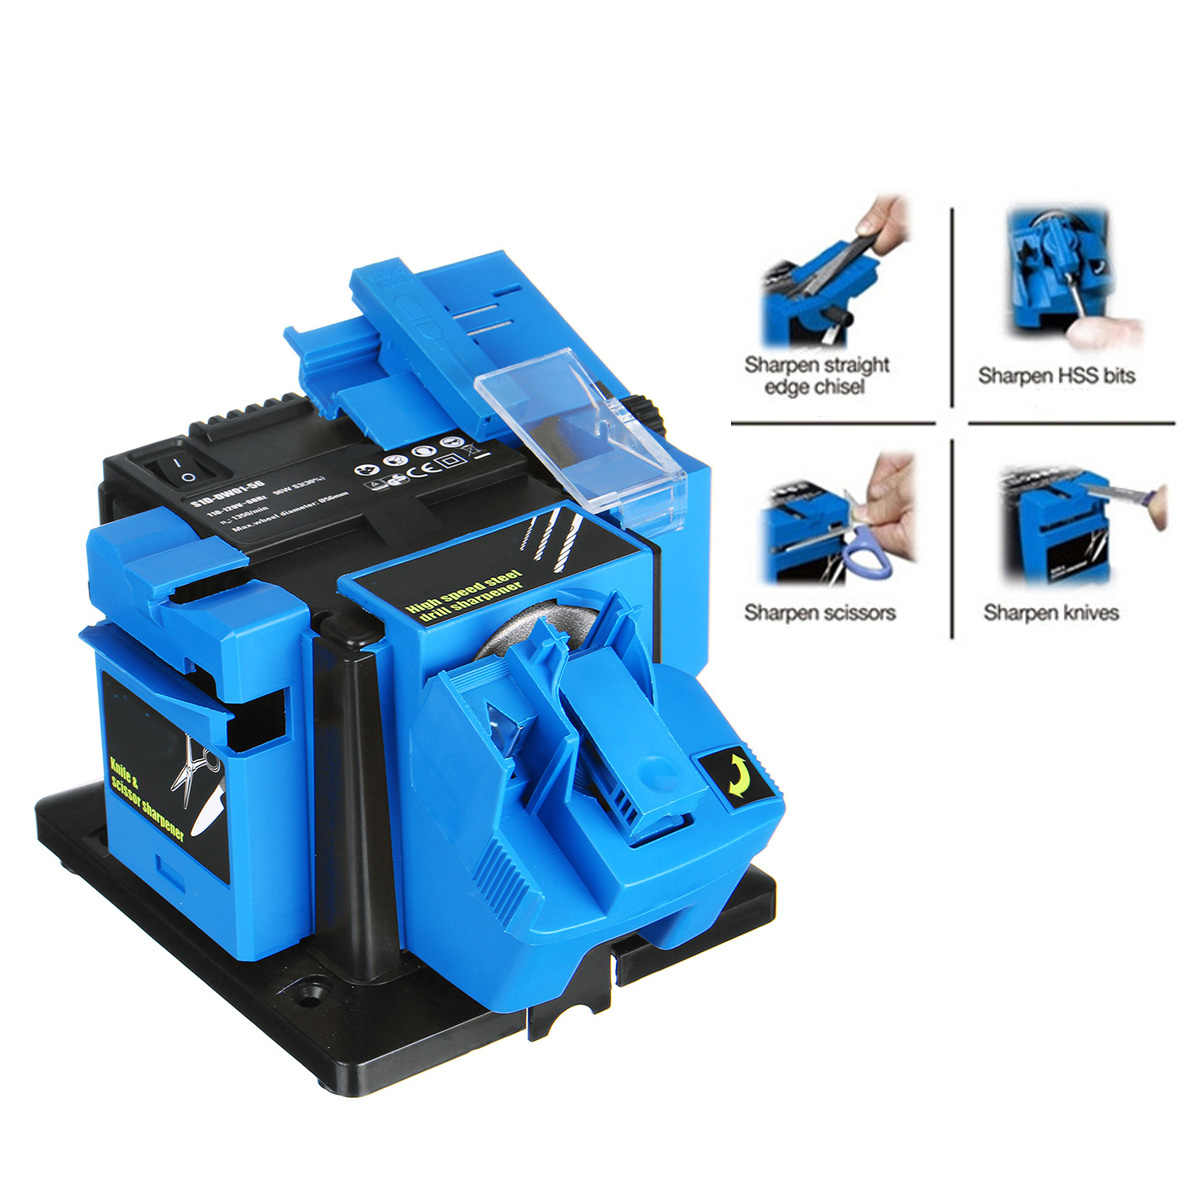 Multifunction Electric Knife Sharpener Drill Sharpening Machine Knife & Scissor Sharpener Power Household Grinding Tools EU/US